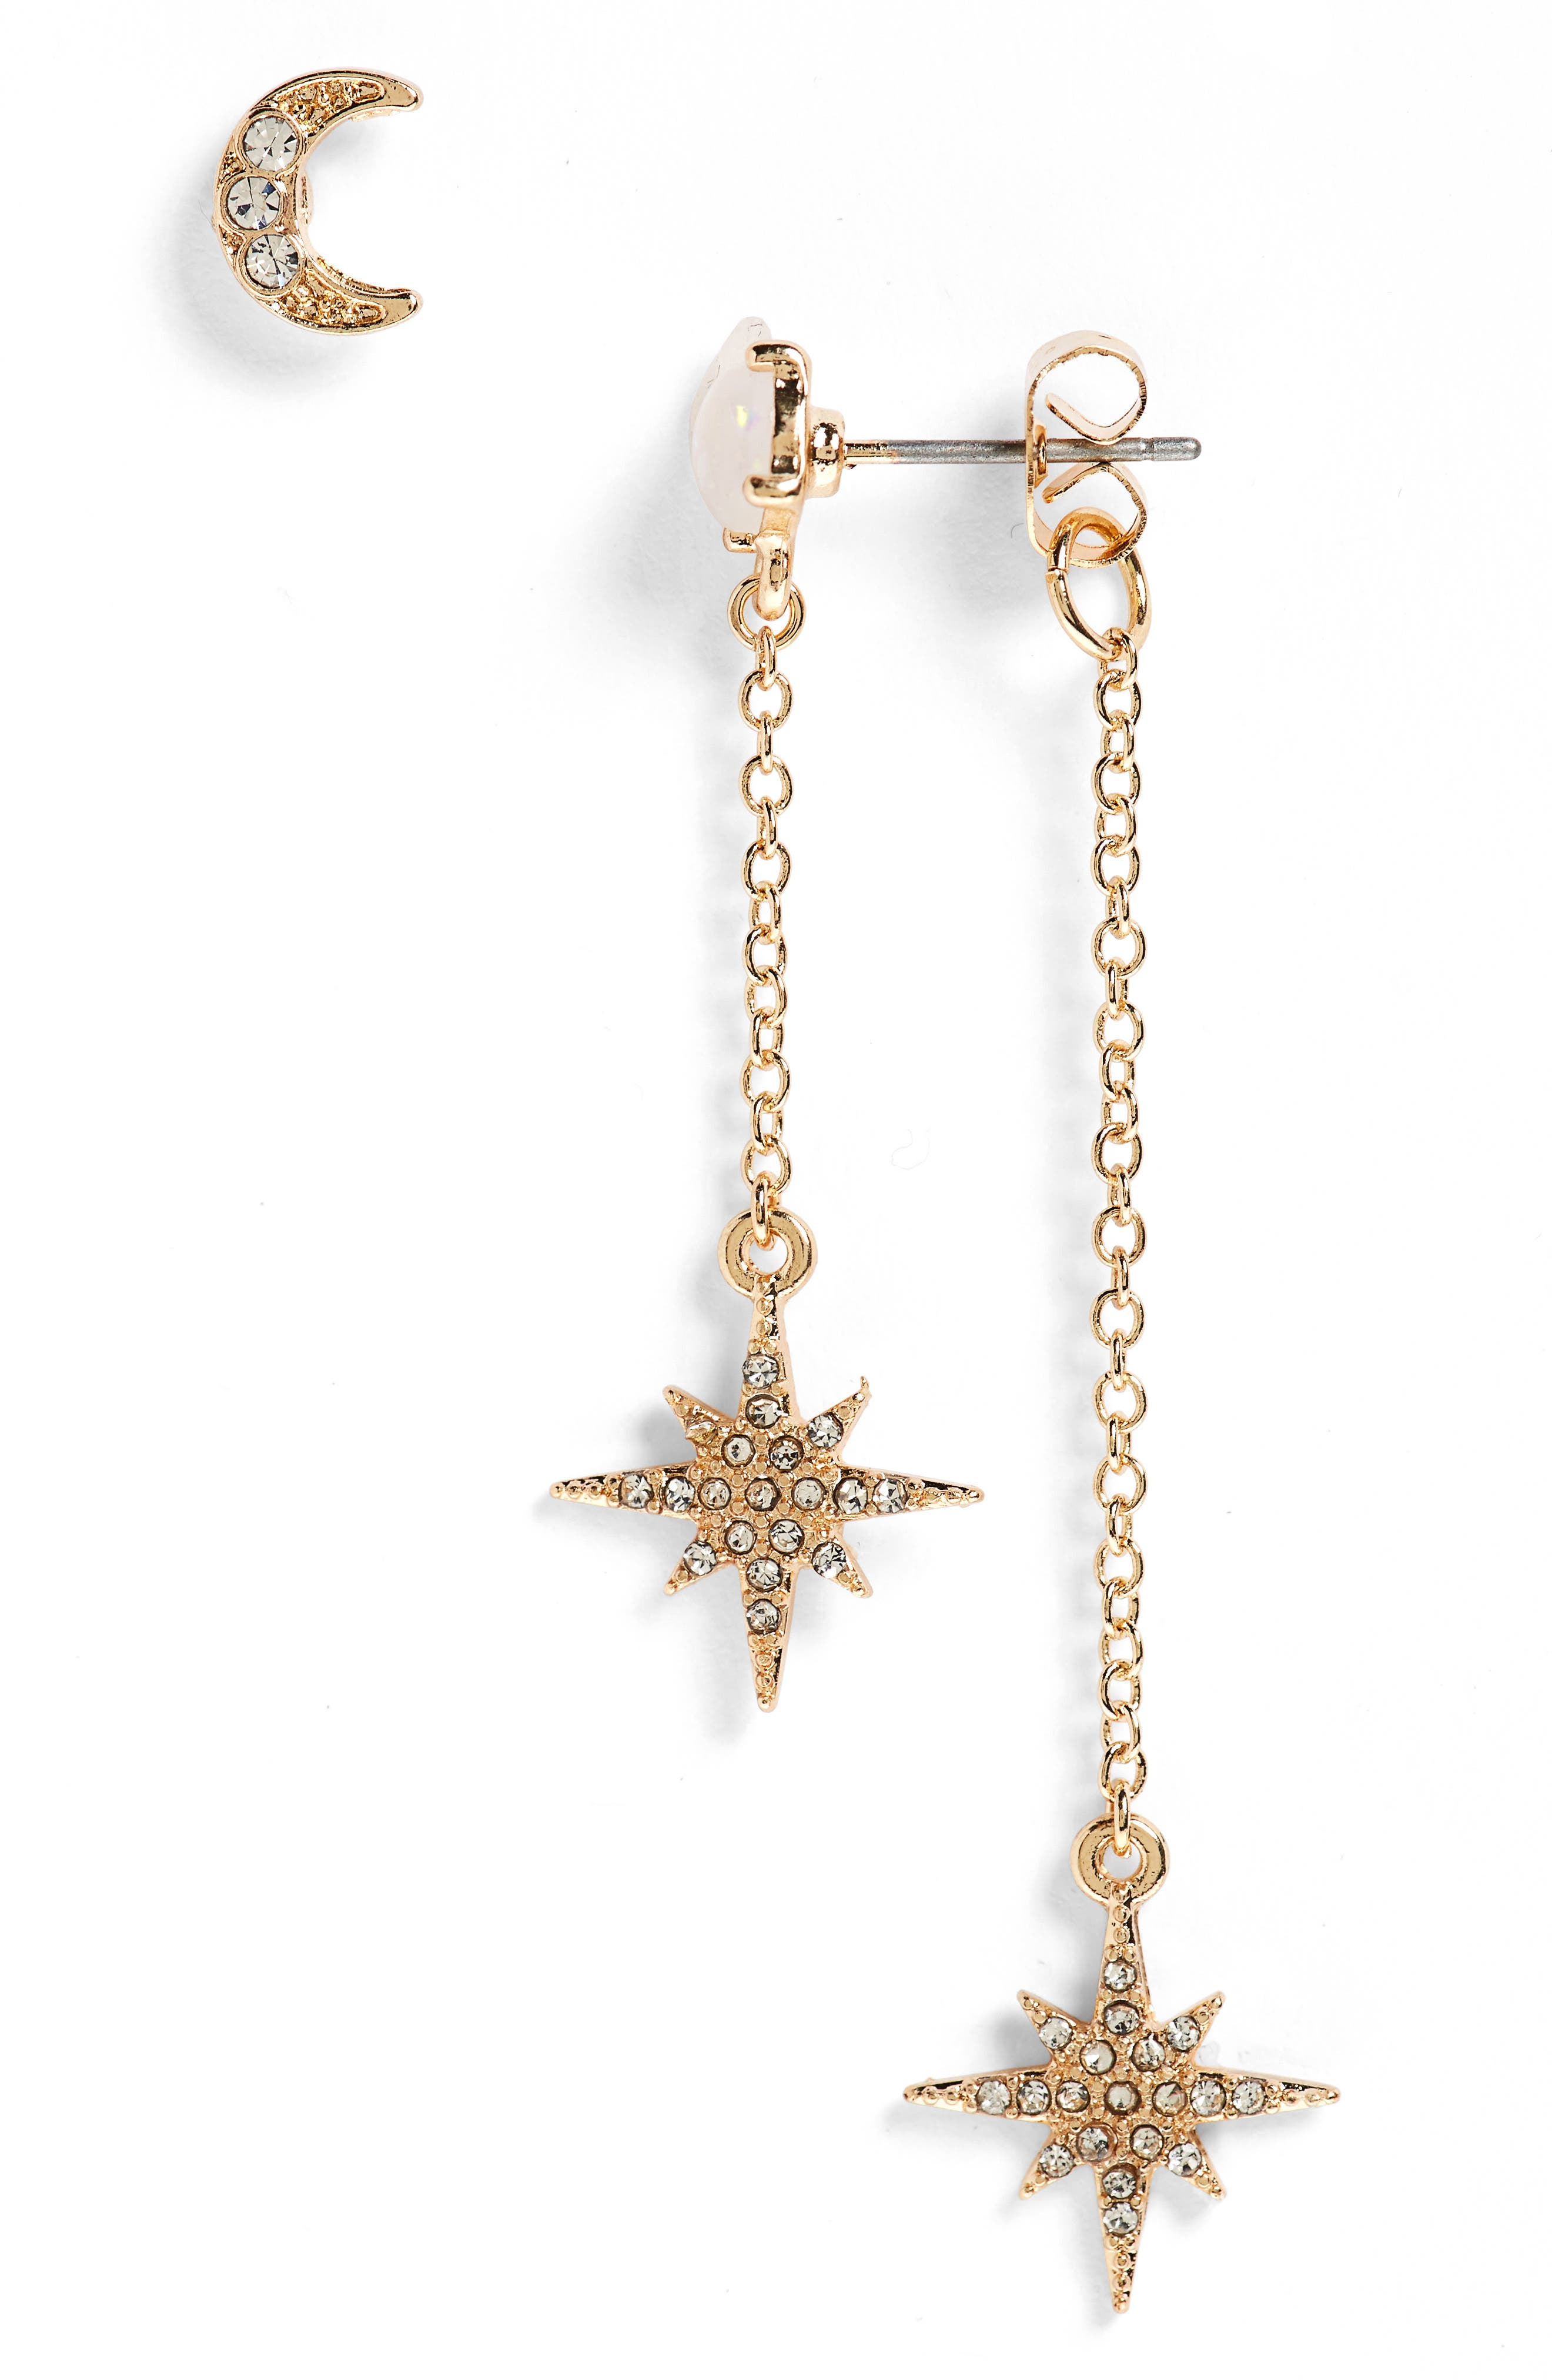 Moon & Star with Faux Opal Statement Earrings,                             Main thumbnail 1, color,                             Gold